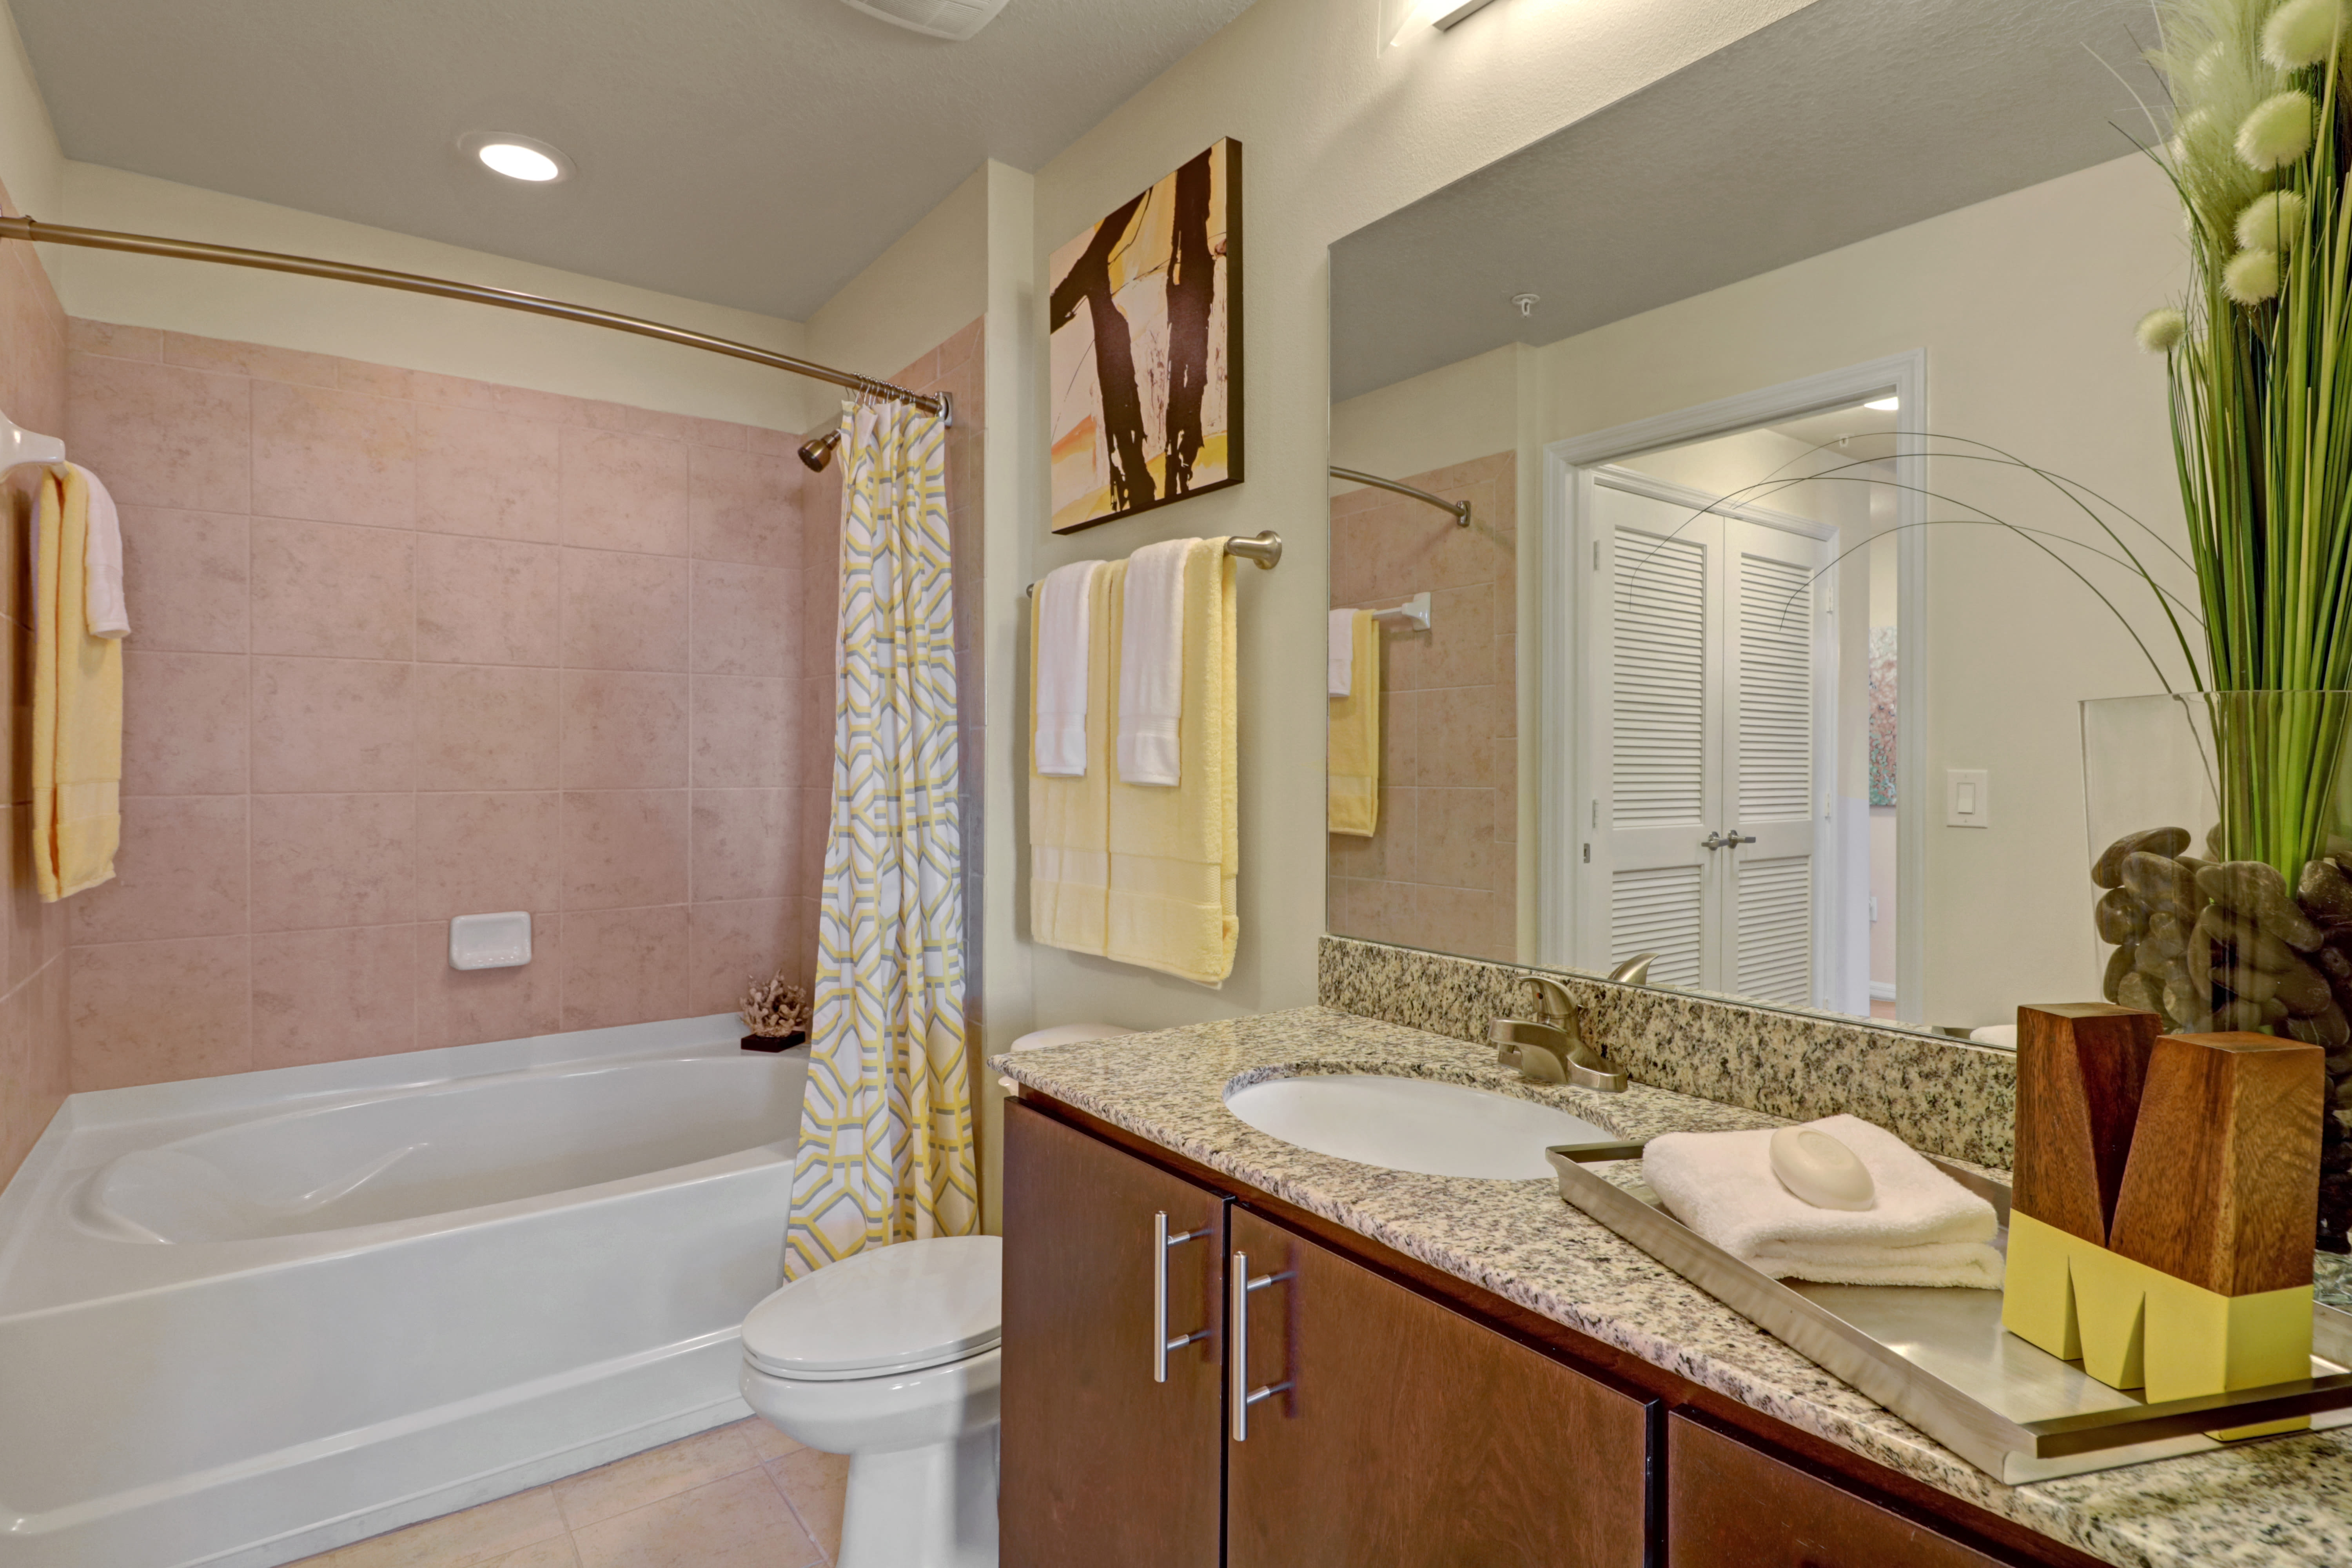 Bathroom featuring large vanity mirror and shower bathtub at Linden Pointe in Pompano Beach, Florida